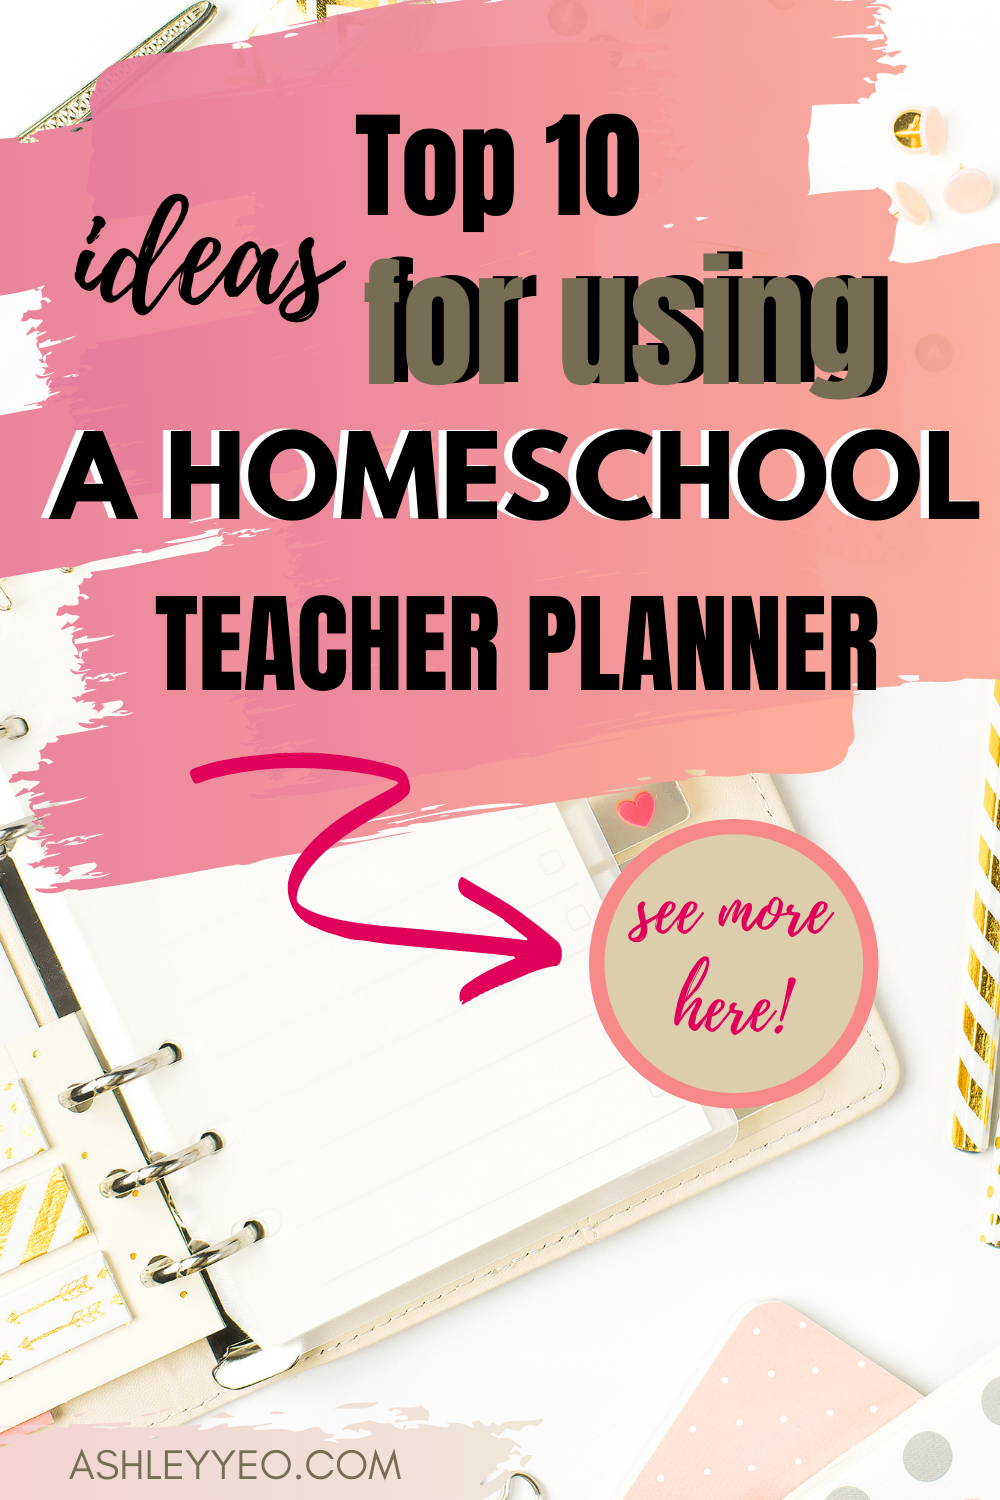 Top 10 Ideas for Using A Homeschool Teacher Planner